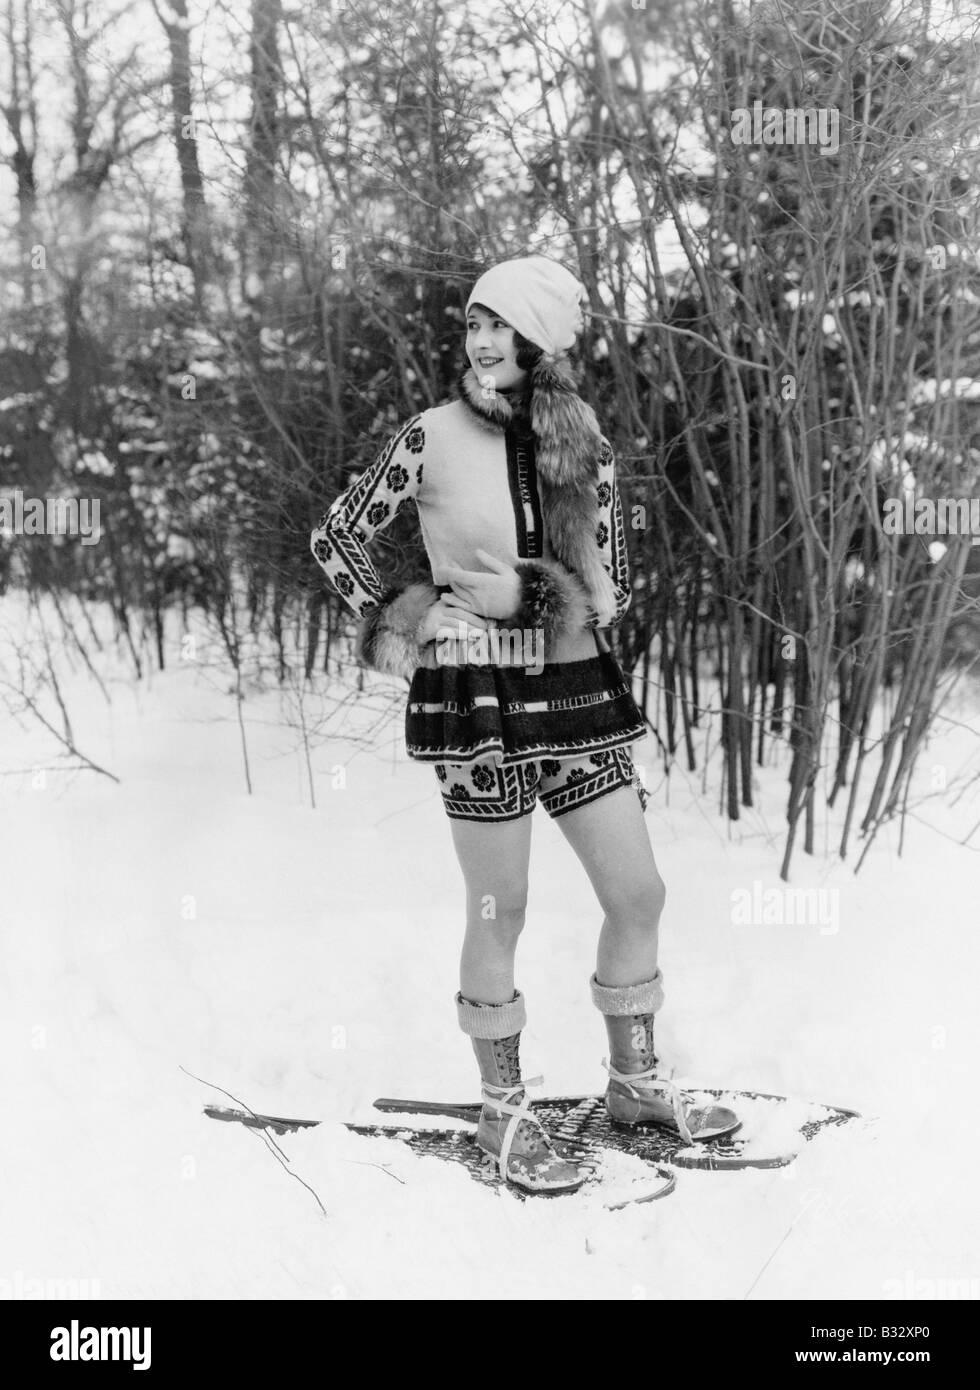 Young woman walking with snow shoes through the woods - Stock Image